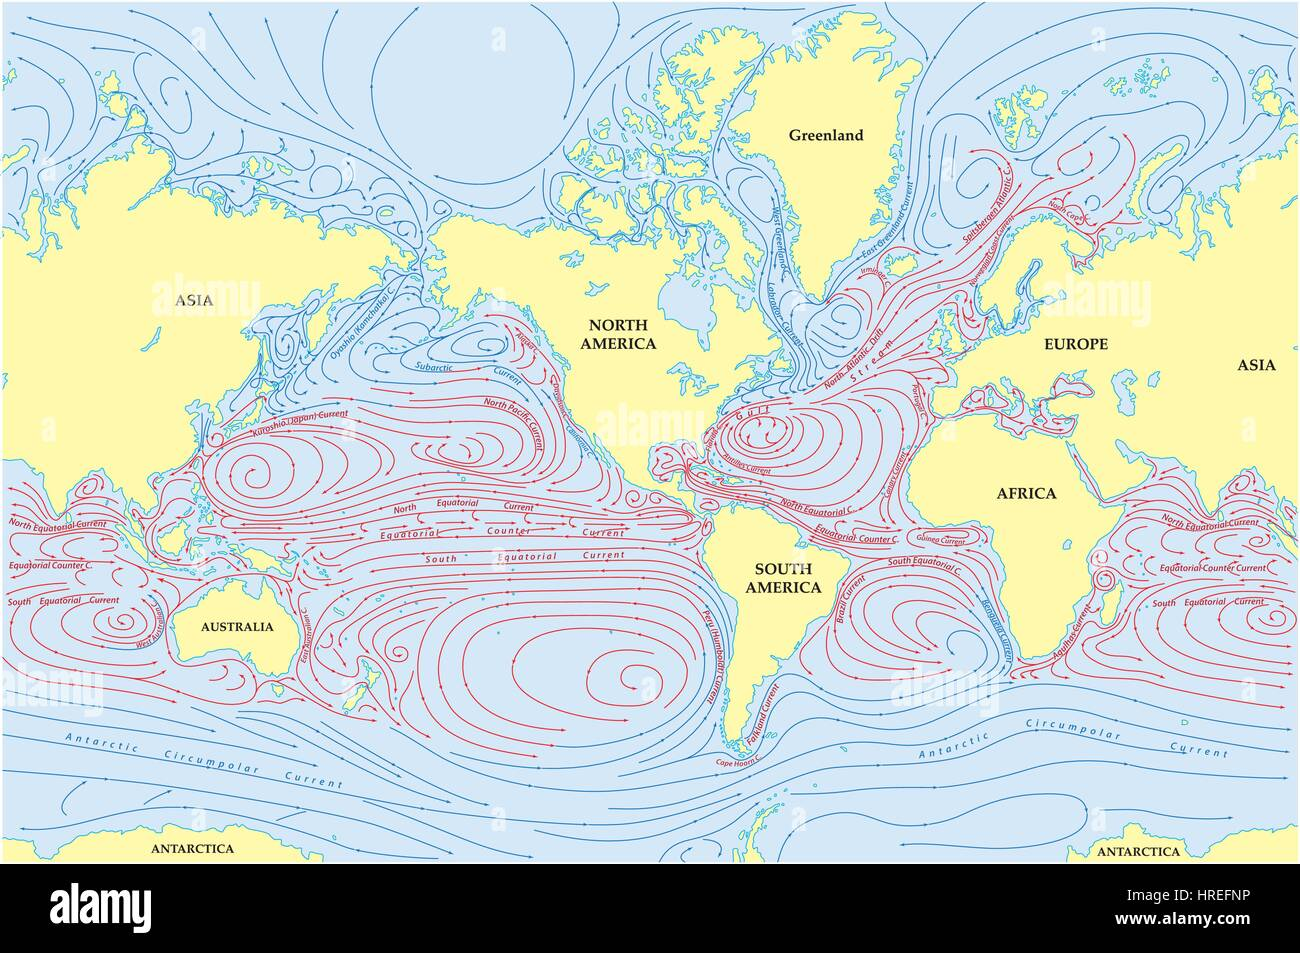 Vector world map of all sea currents stock vector art illustration vector world map of all sea currents gumiabroncs Choice Image